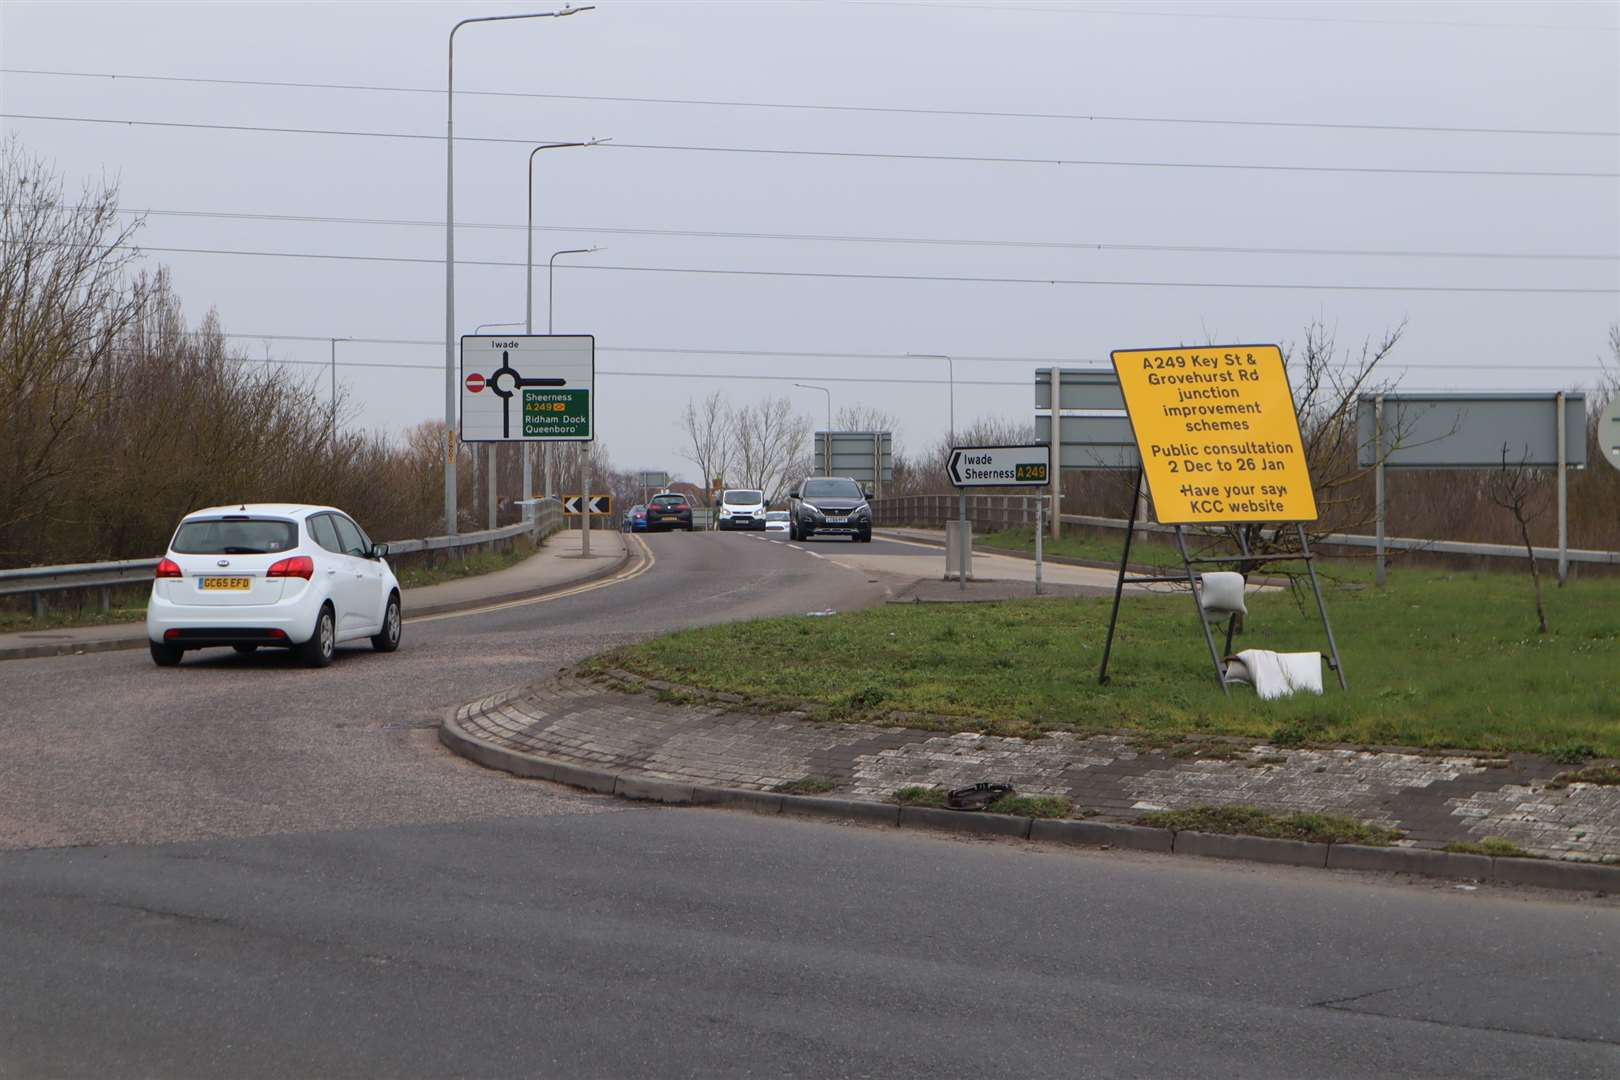 Grovehurst roundabout on the A249 at Iwade and Kemsley near Sittingbourne to be upgraded